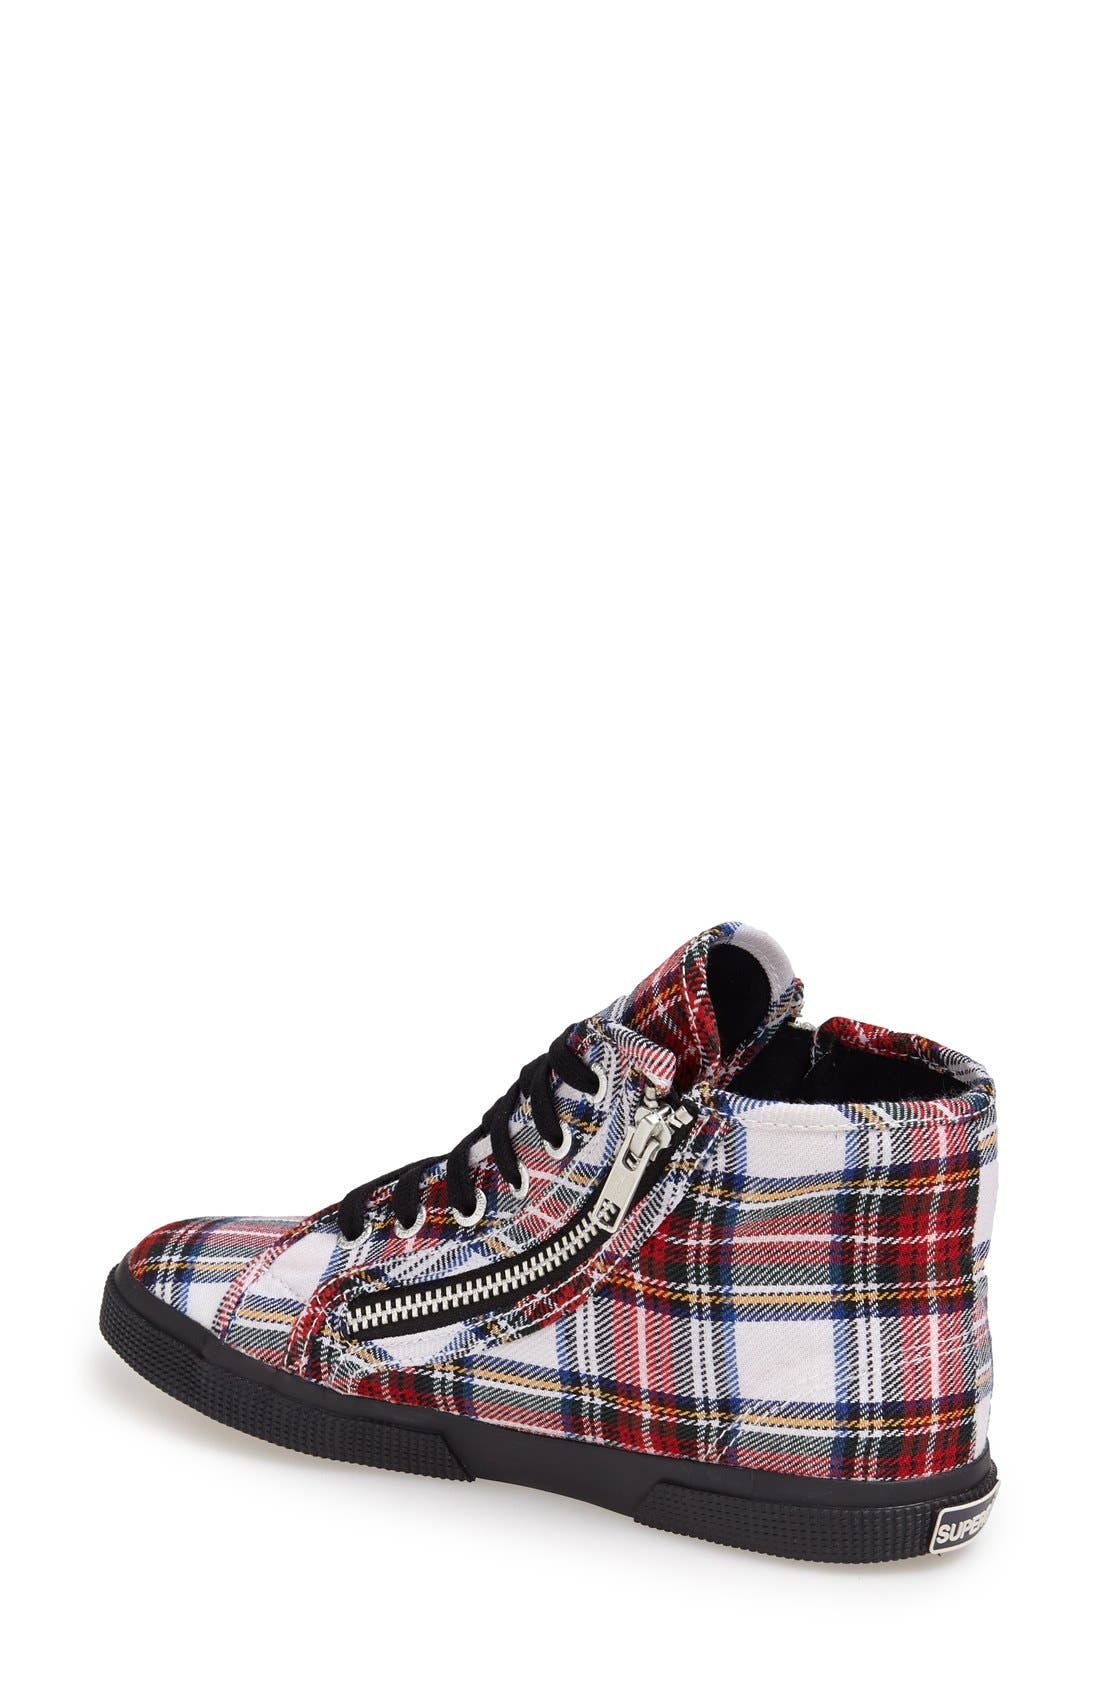 Alternate Image 2  - Superga Tartan Print High-Top Sneaker (Women)